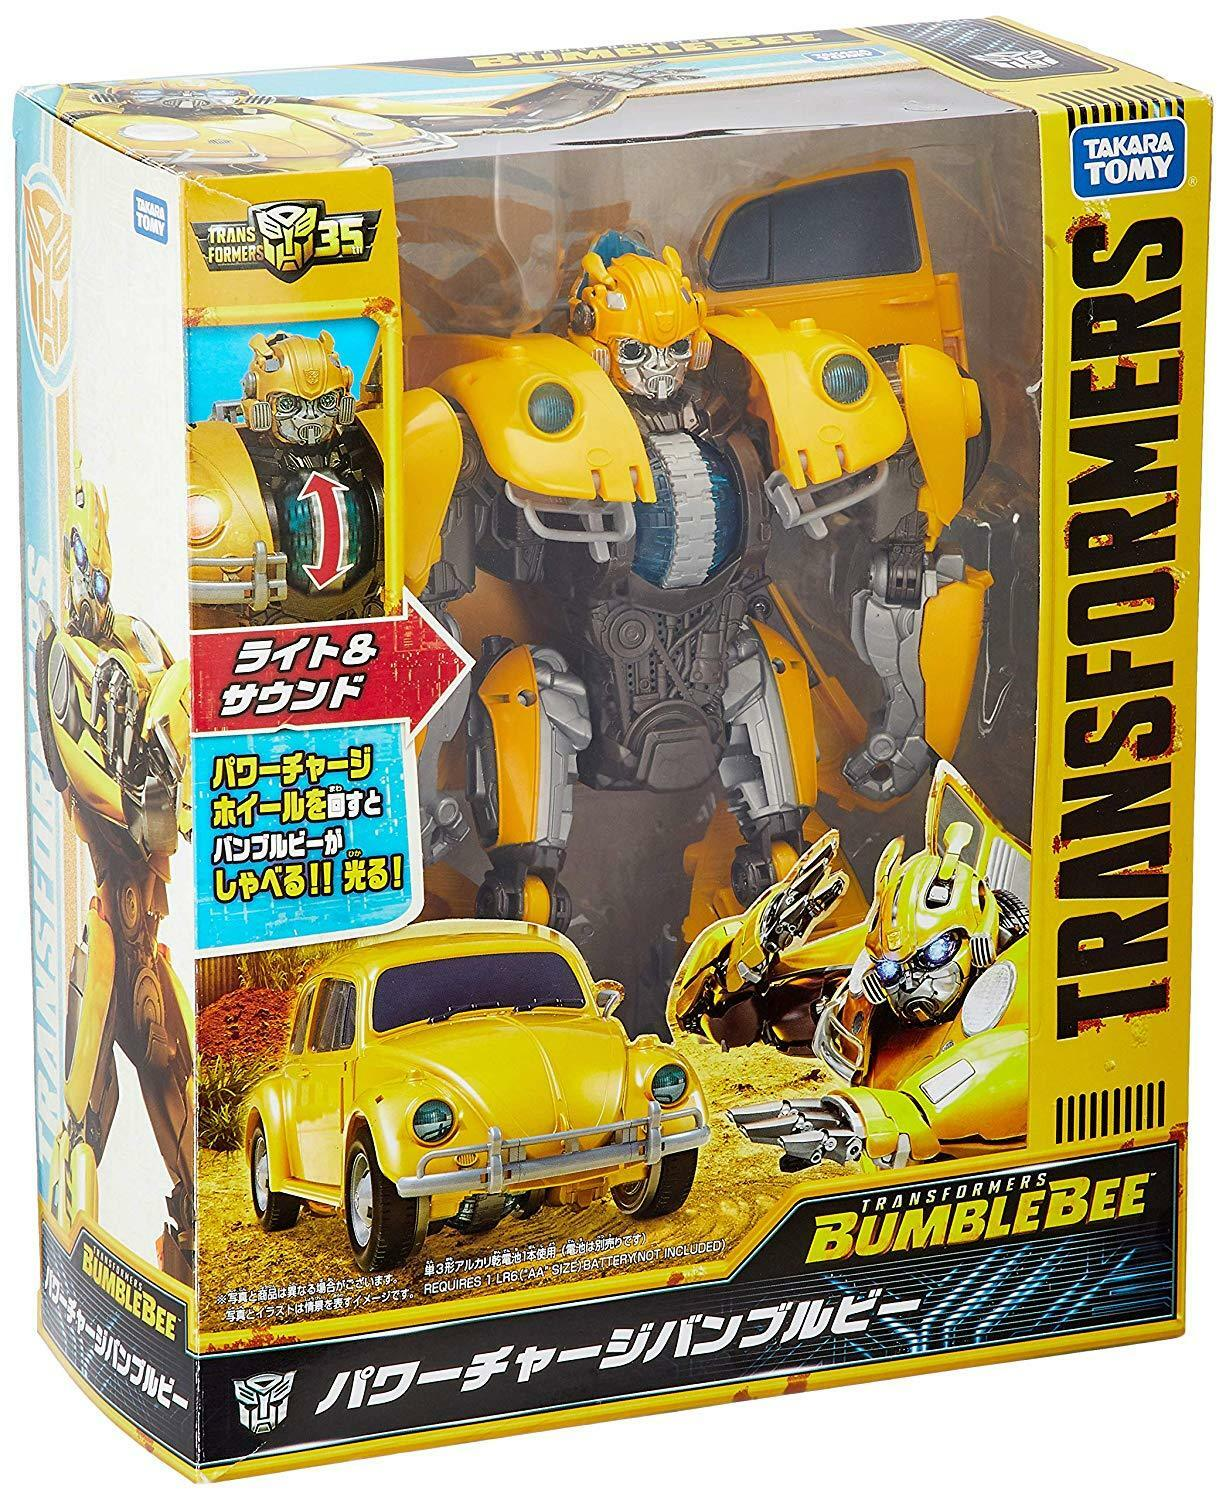 Transformers Power Charge Bumblebee New